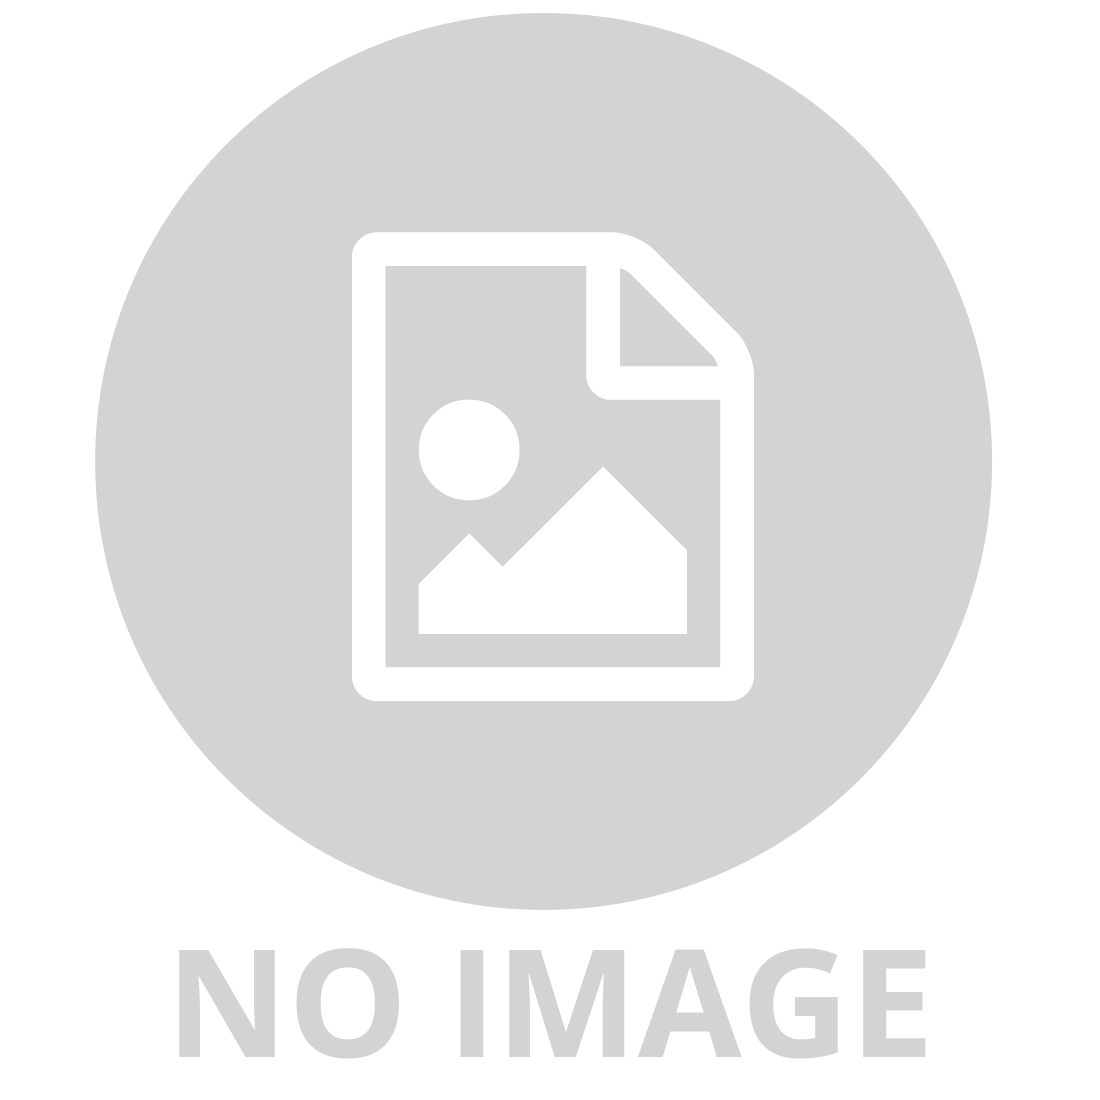 WAHU FLOTATION VEST SMALL